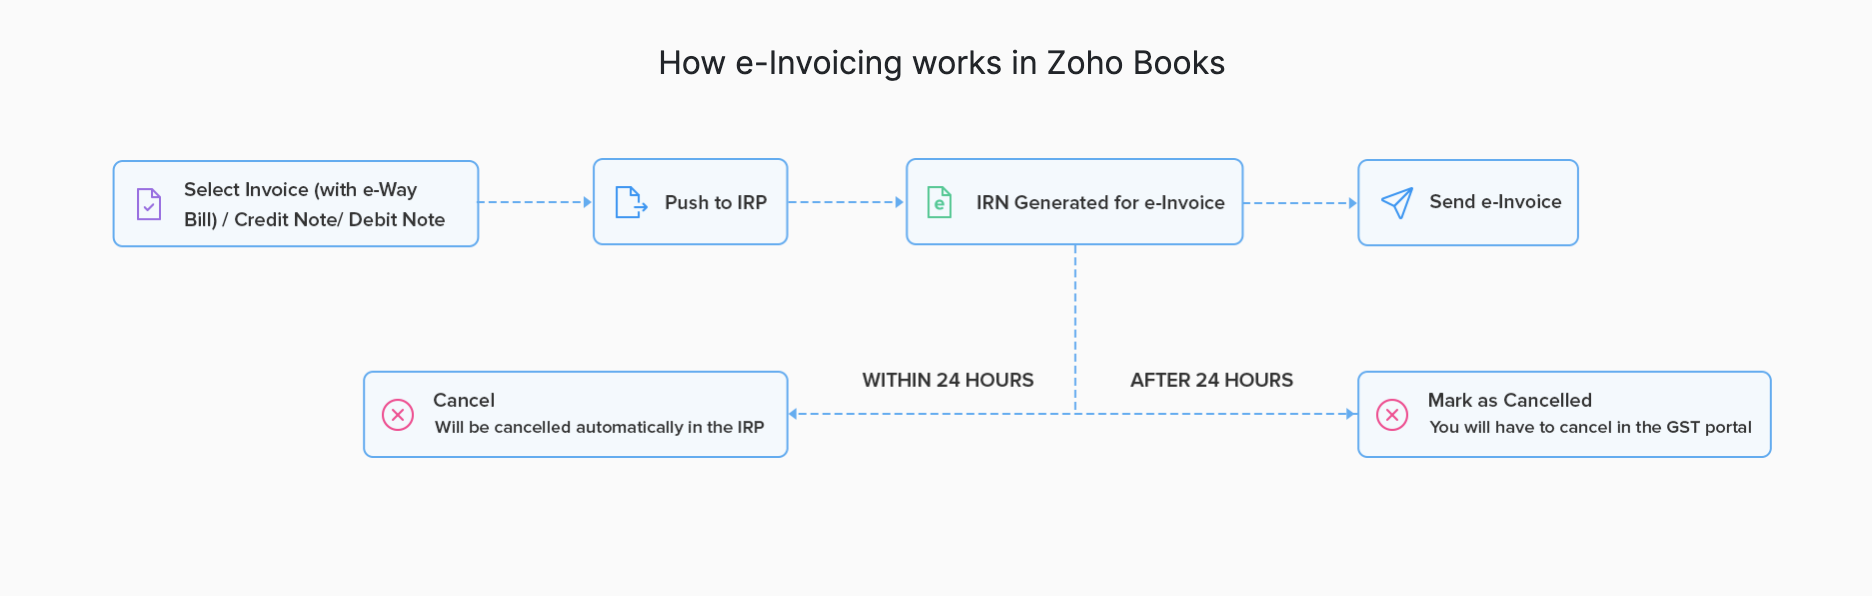 How e-Invoicing works in Zoho Books